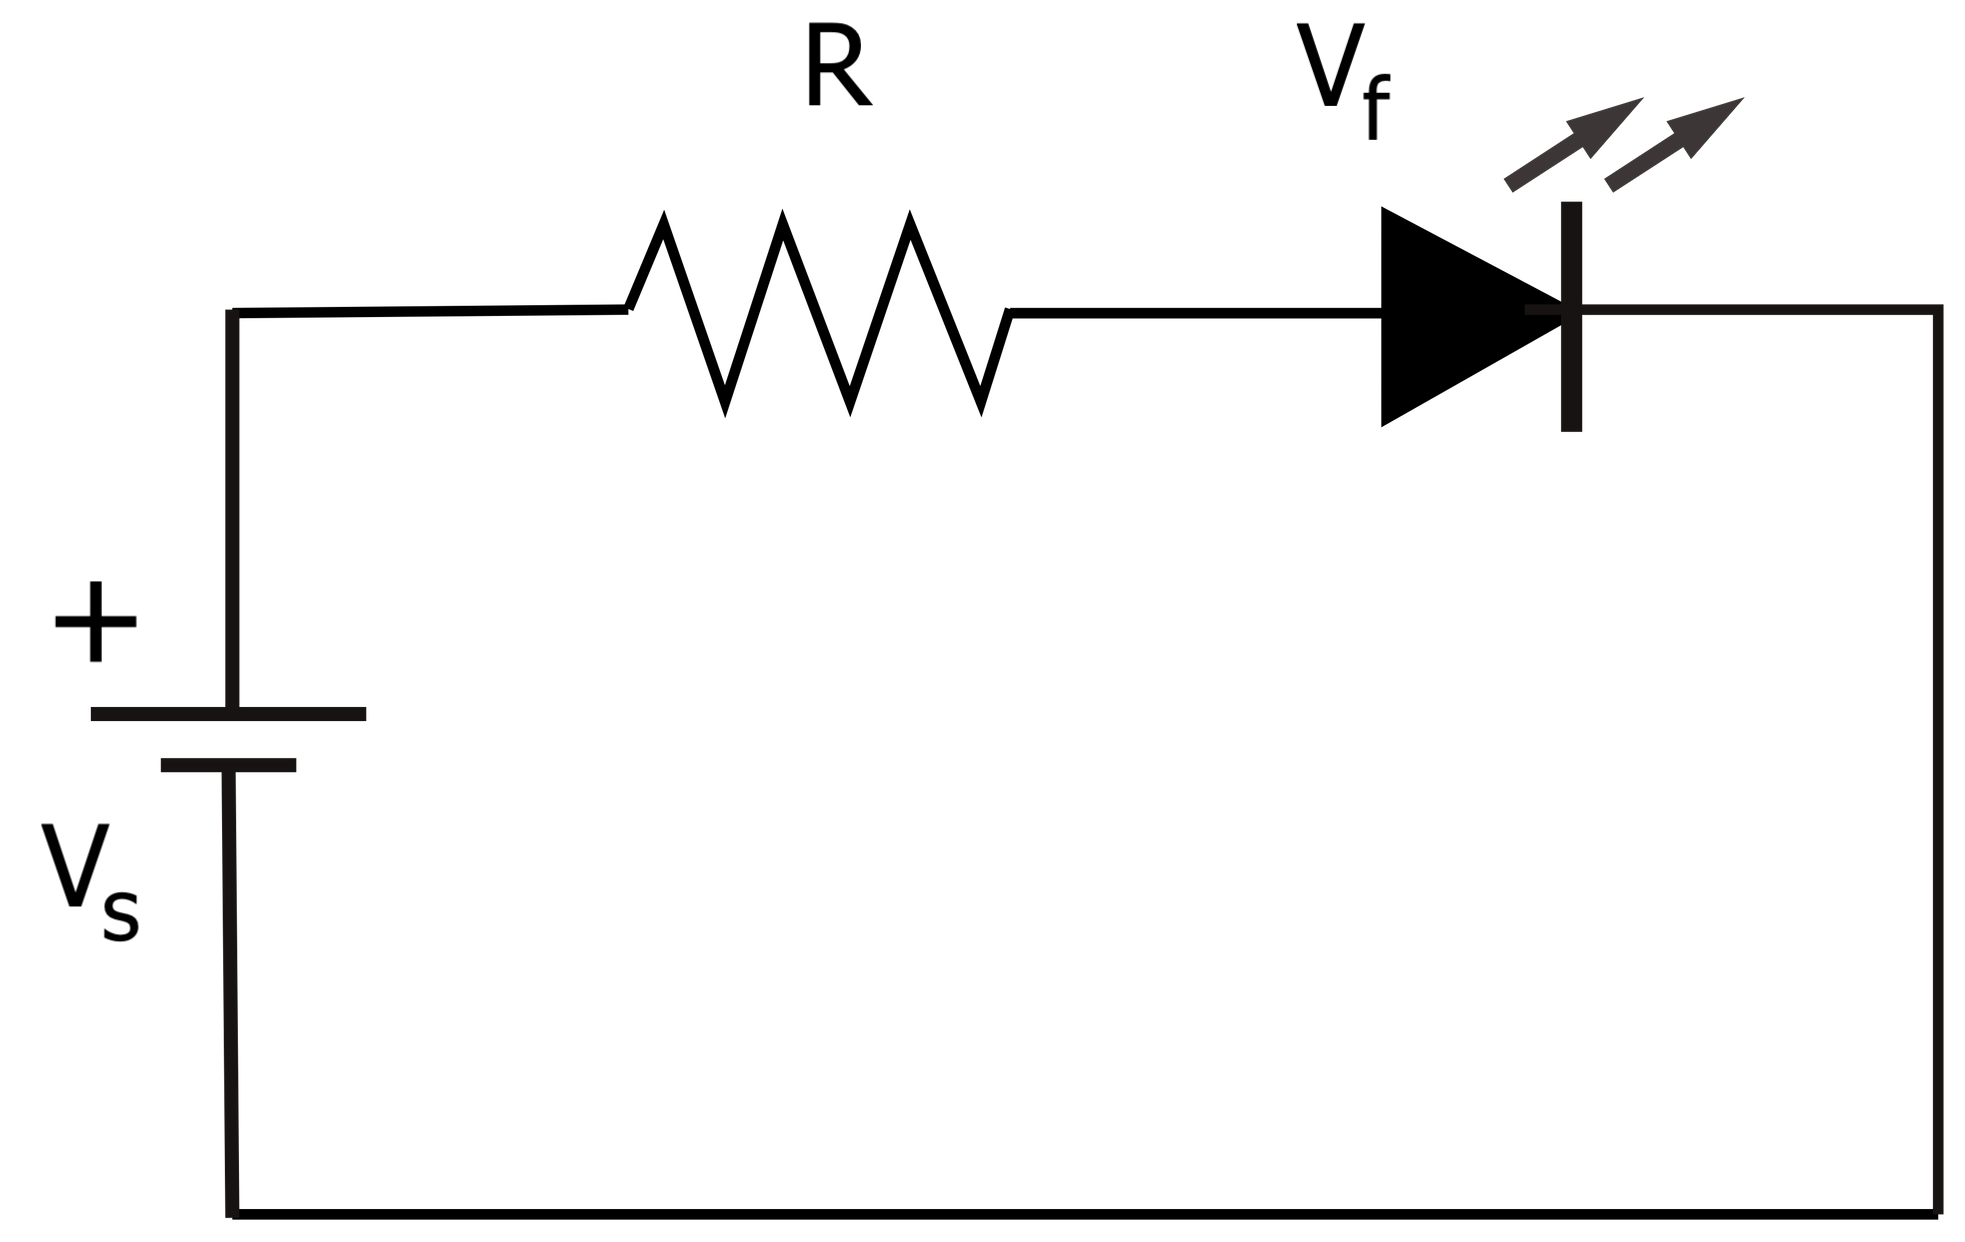 electrical circuit diagram showing an led and resistor